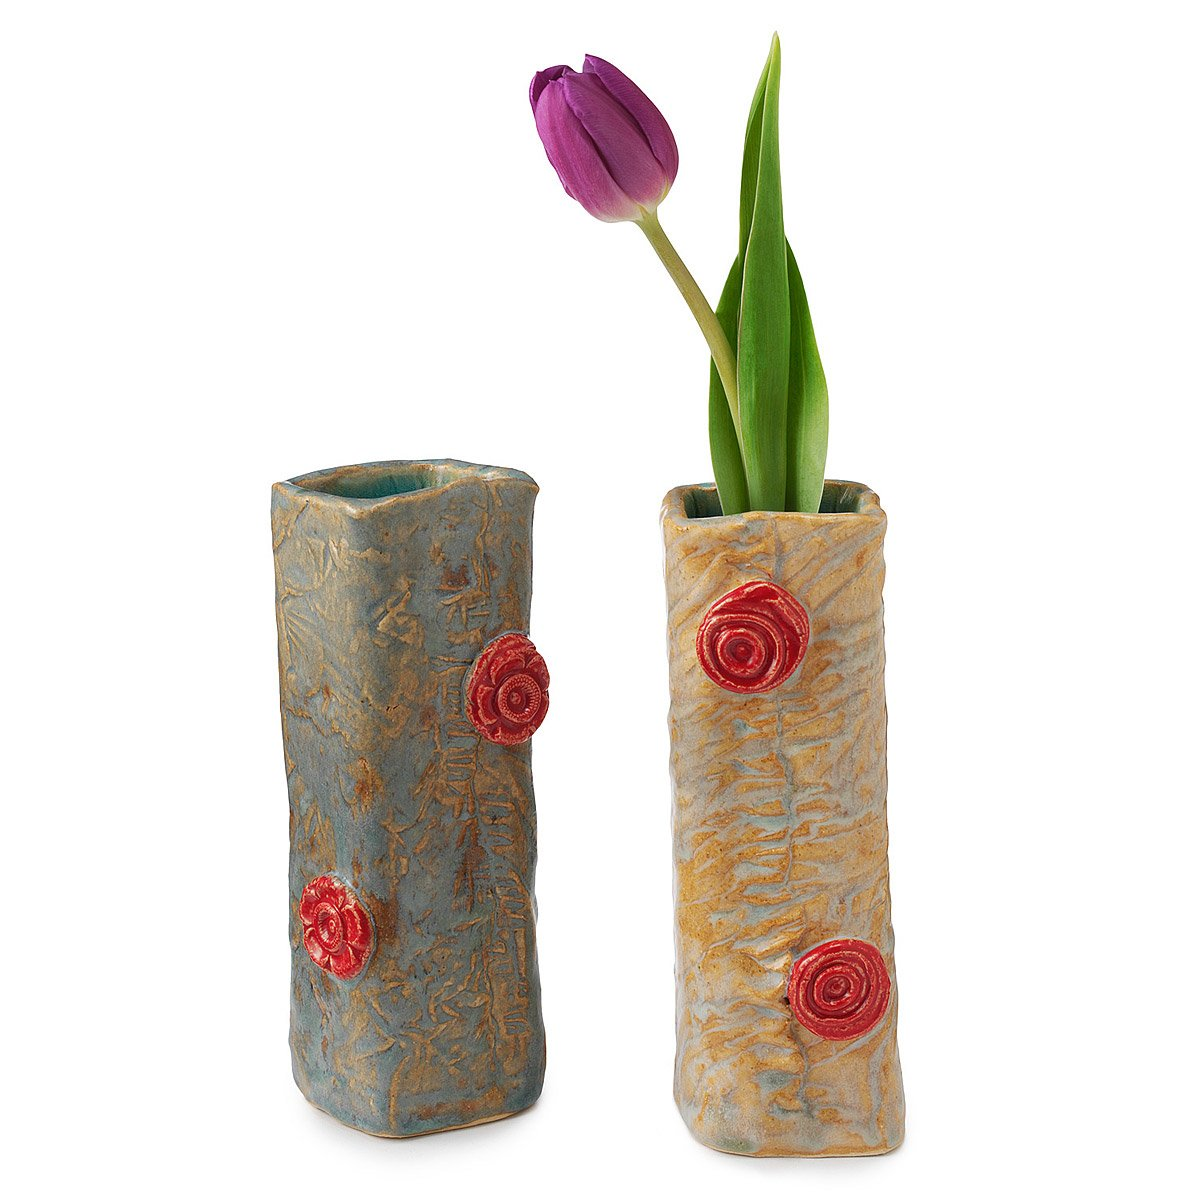 rosette vases handmade artist home decor clay home decor lookbook uncommongoods